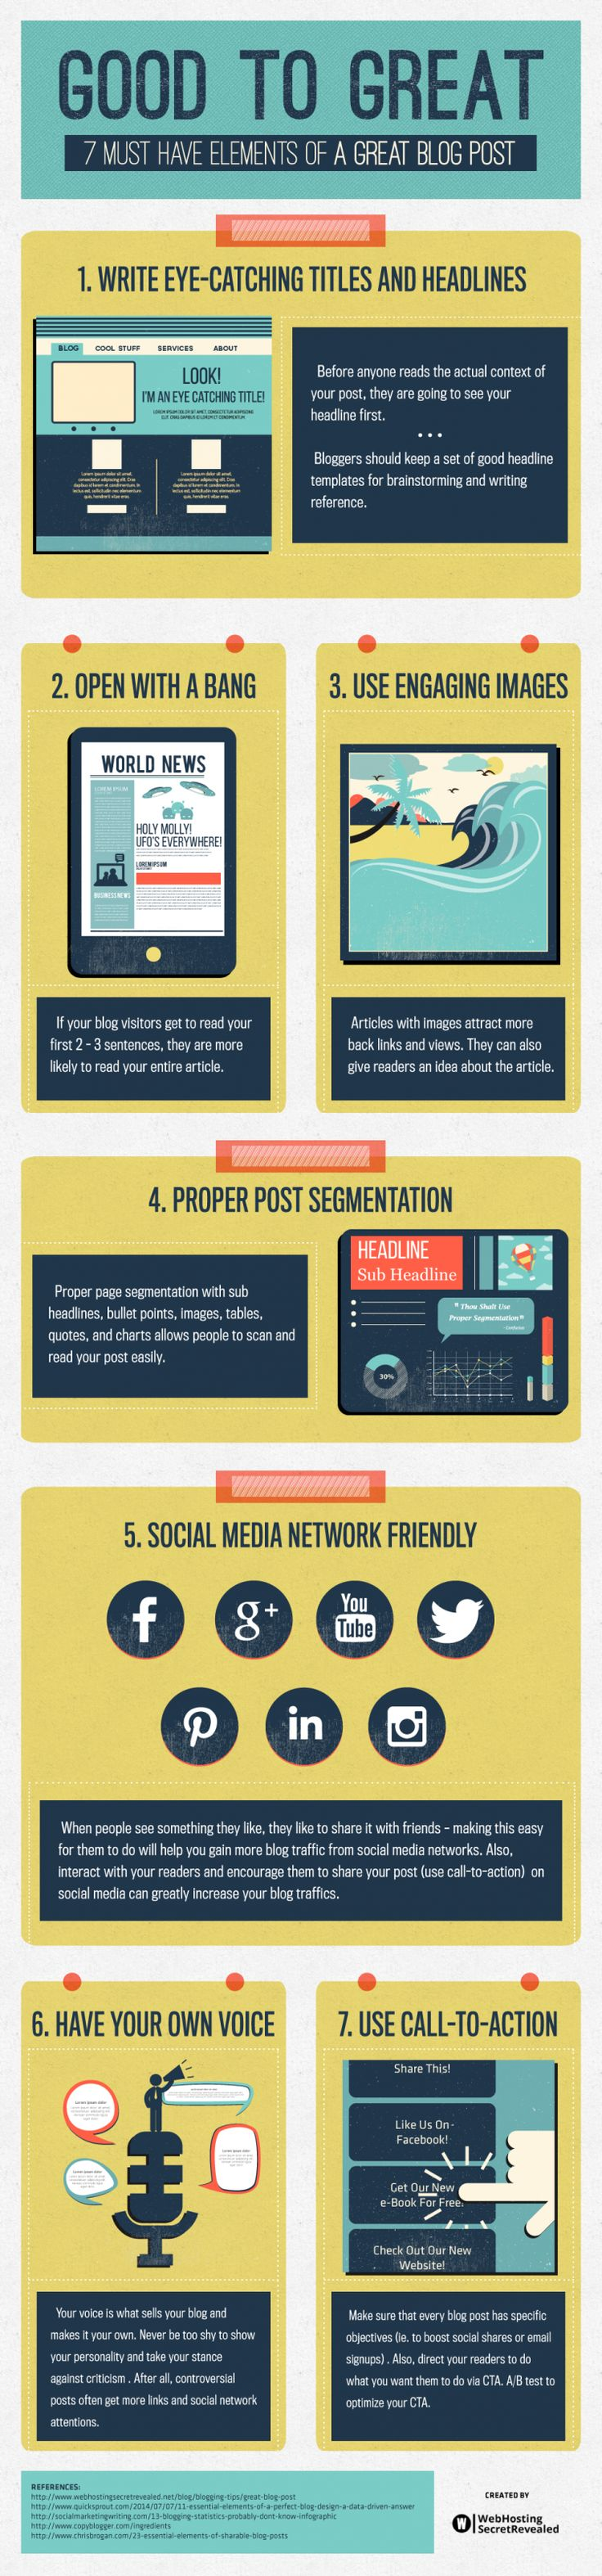 7 must have elements of a great Blog Post